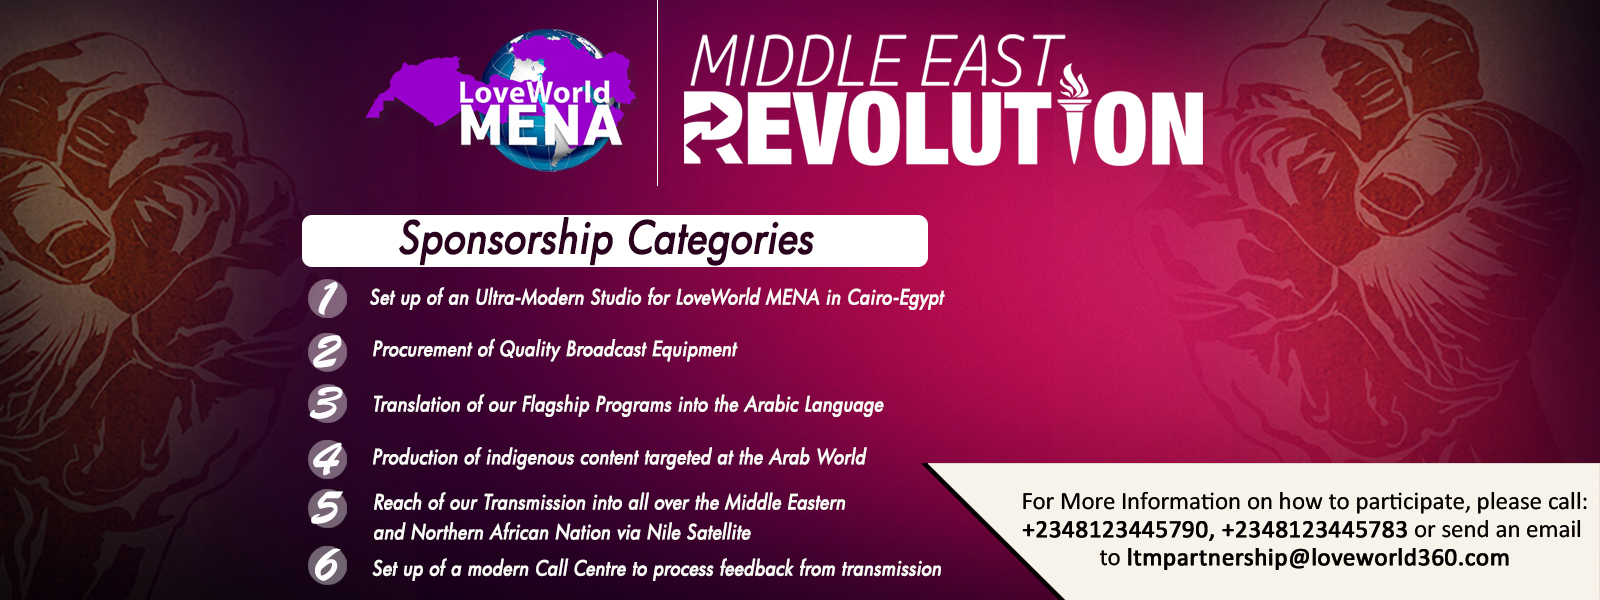 LOVEWORLD MENA REVOLUTION